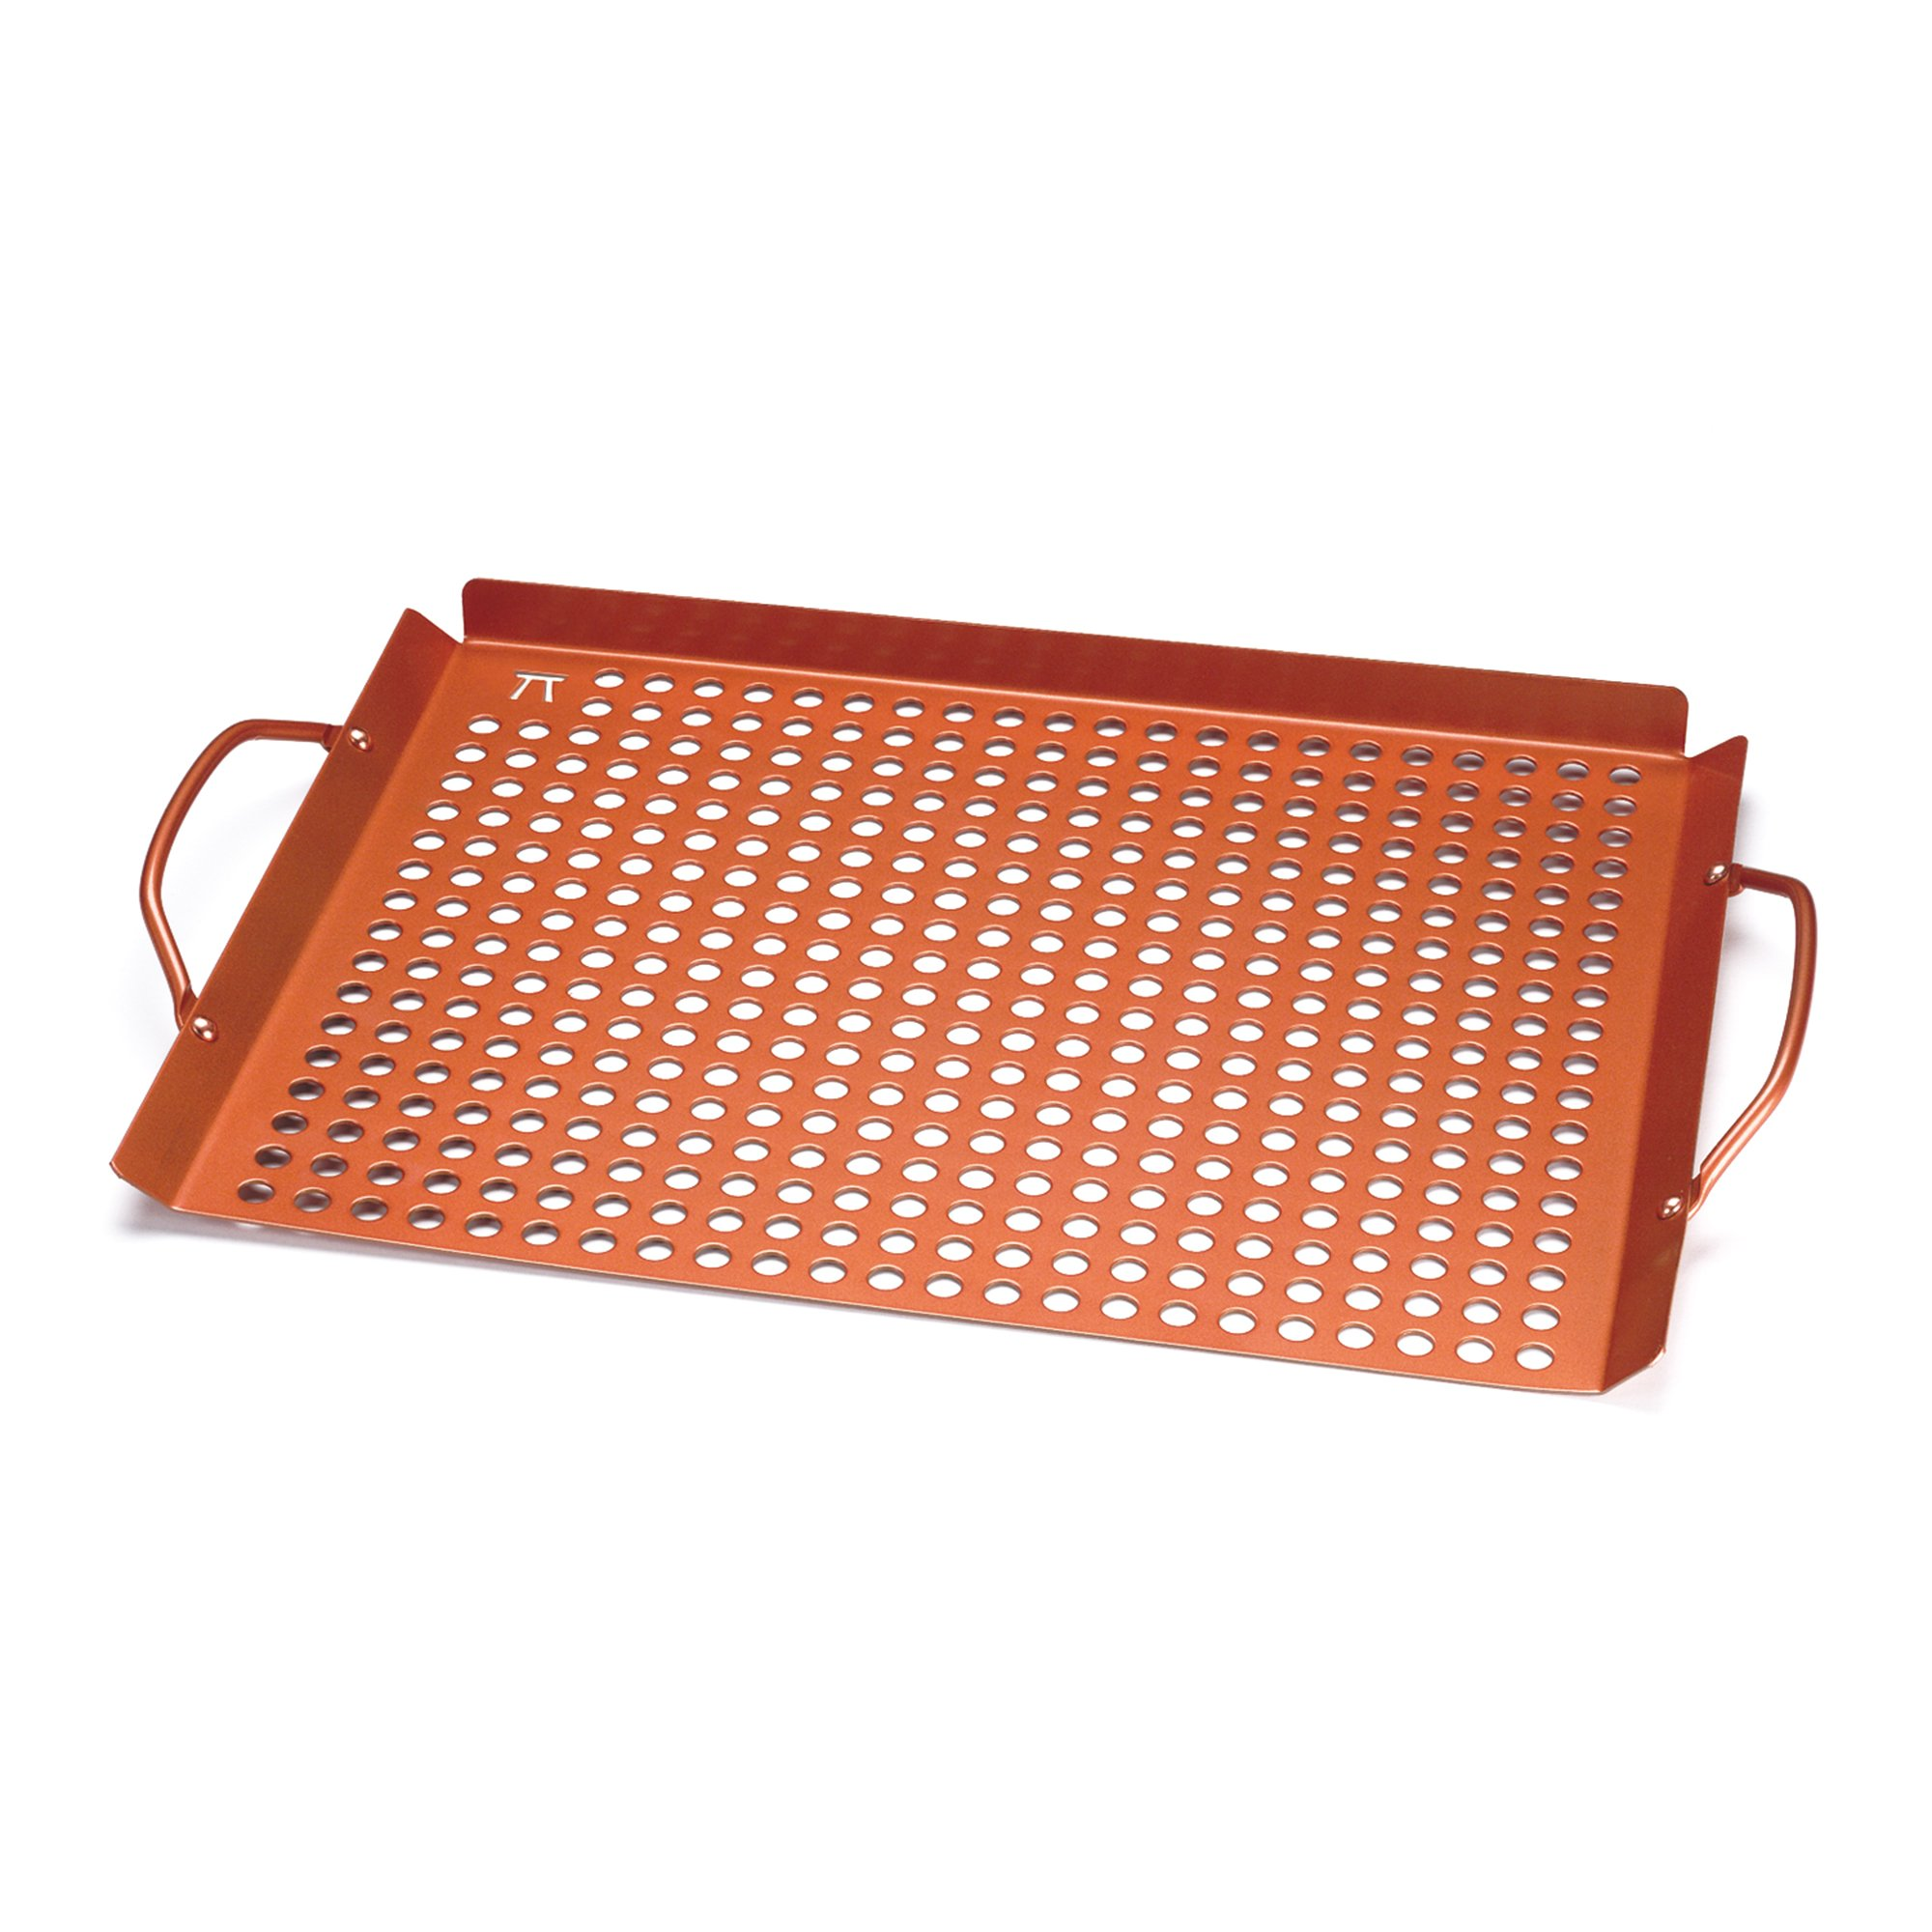 Outset QN71 Large Grill Grid with Handles, Copper Non-Stick by Outset